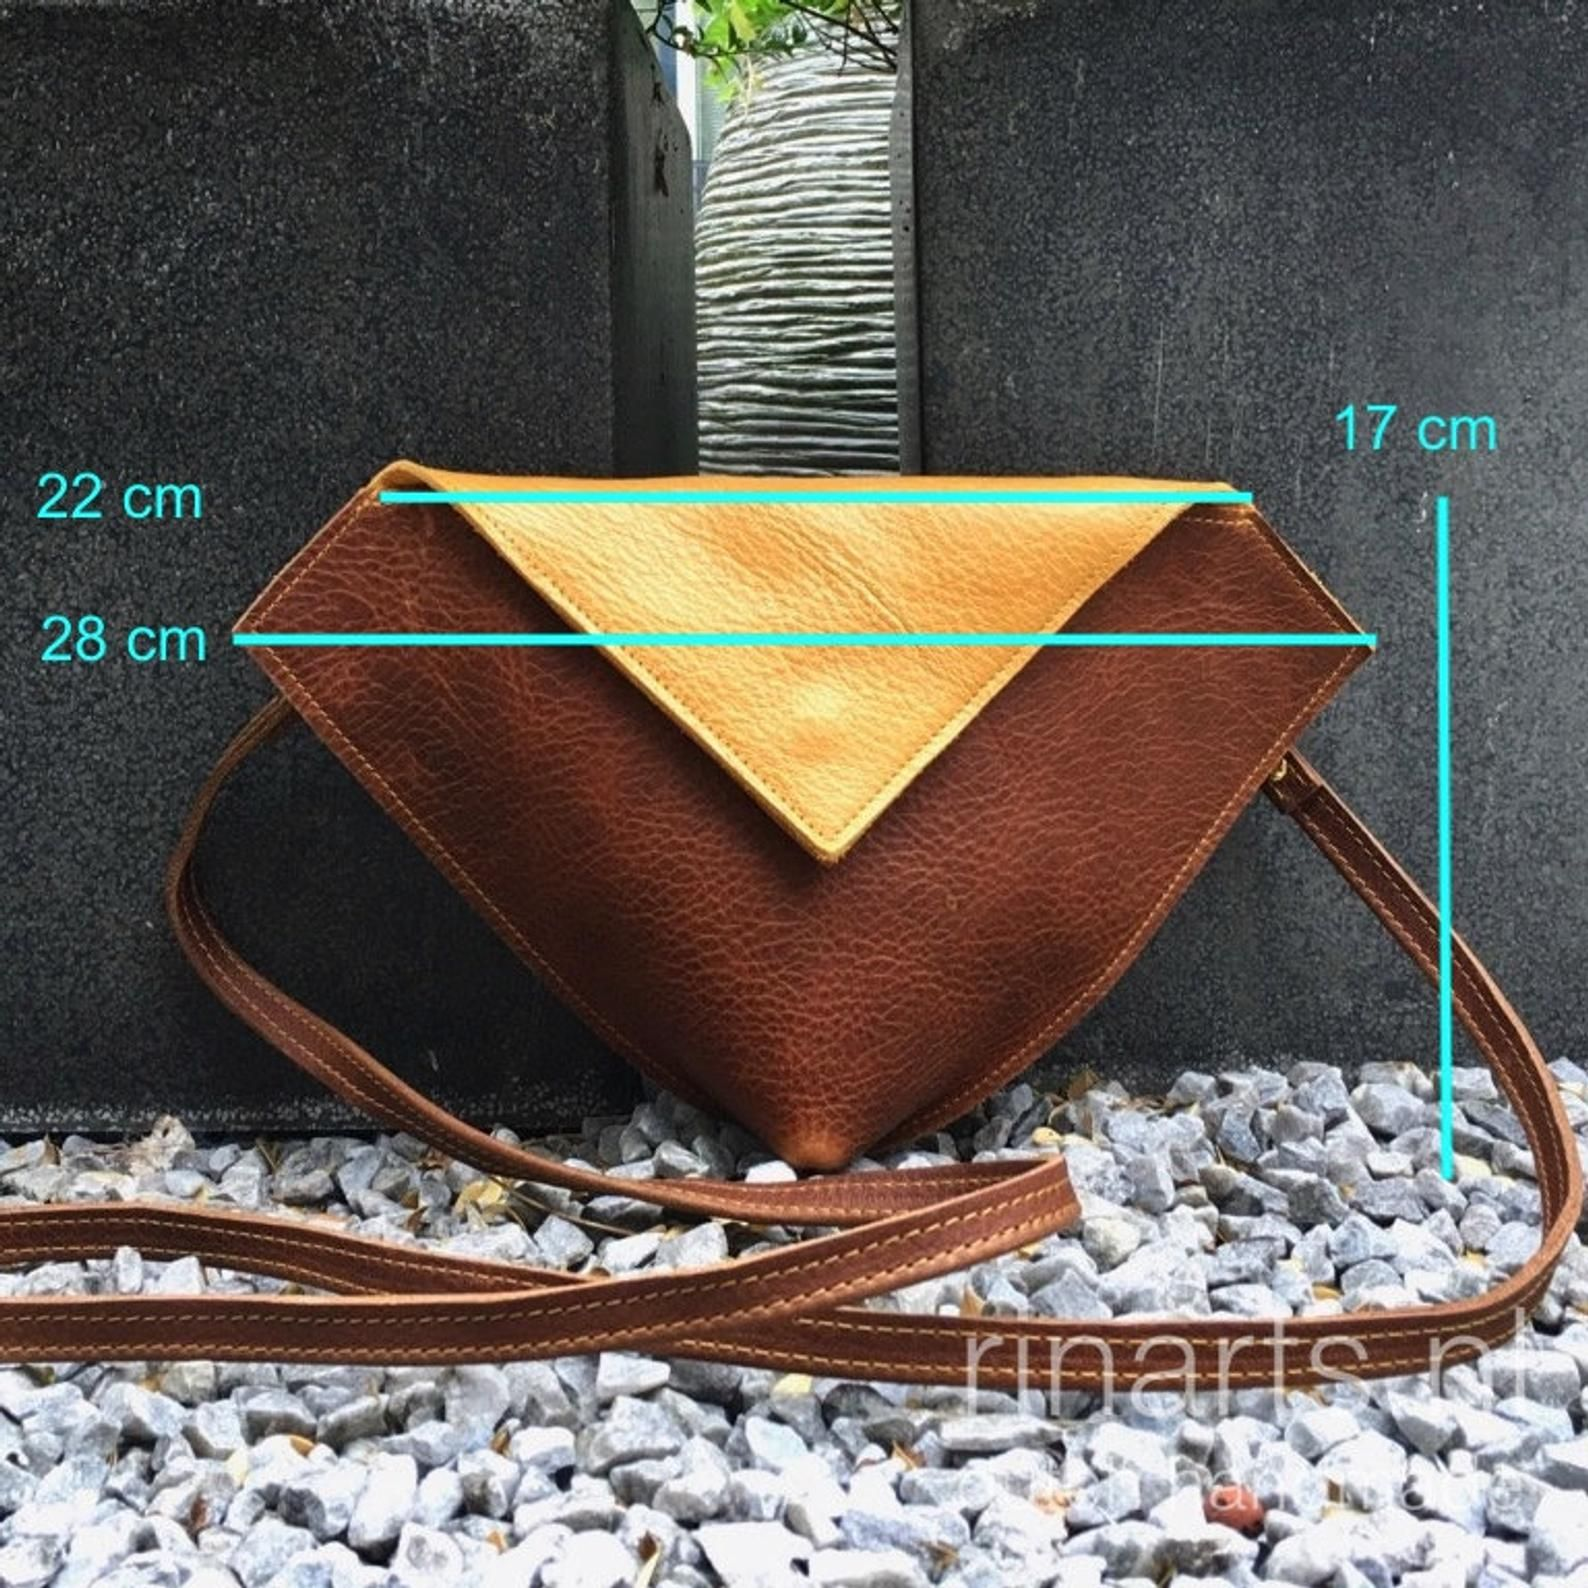 Photo of Leather crossbody bag / clutch / purse / hip bag  DIAMOND in yellow and cognac brown leather. Color block cross body bag